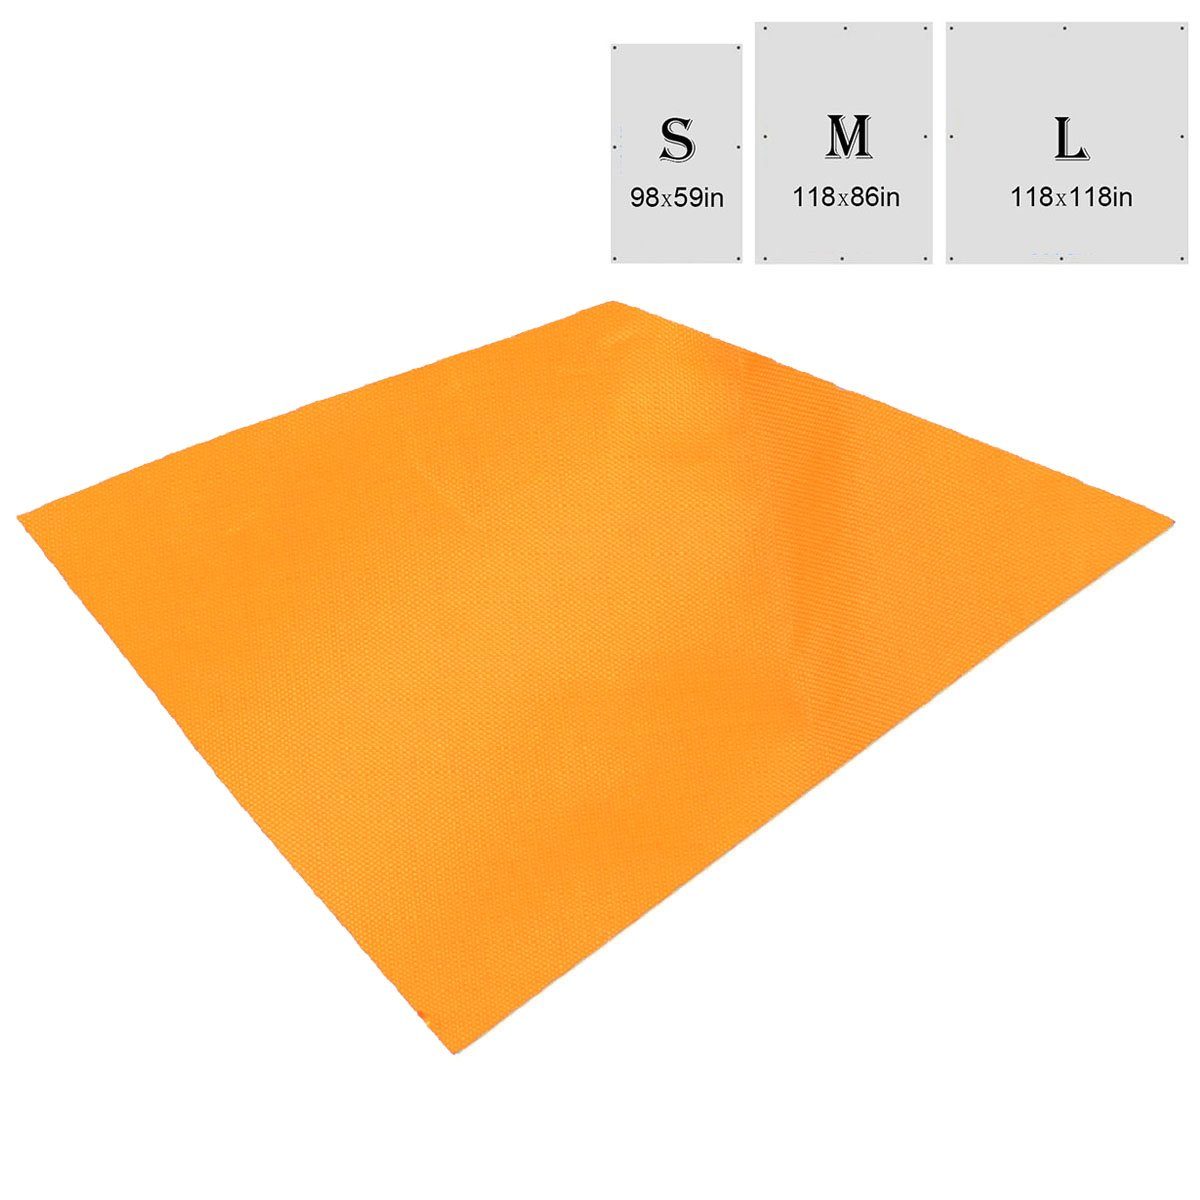 TRIWONDER Waterproof Hammock Rain Fly Tent Tarp Footprint Camping Shelter Ground Cloth Sunshade Mat for Outdoor Hiking Beach Picnic (Orange, L - 118 x 118in) by TRIWONDER